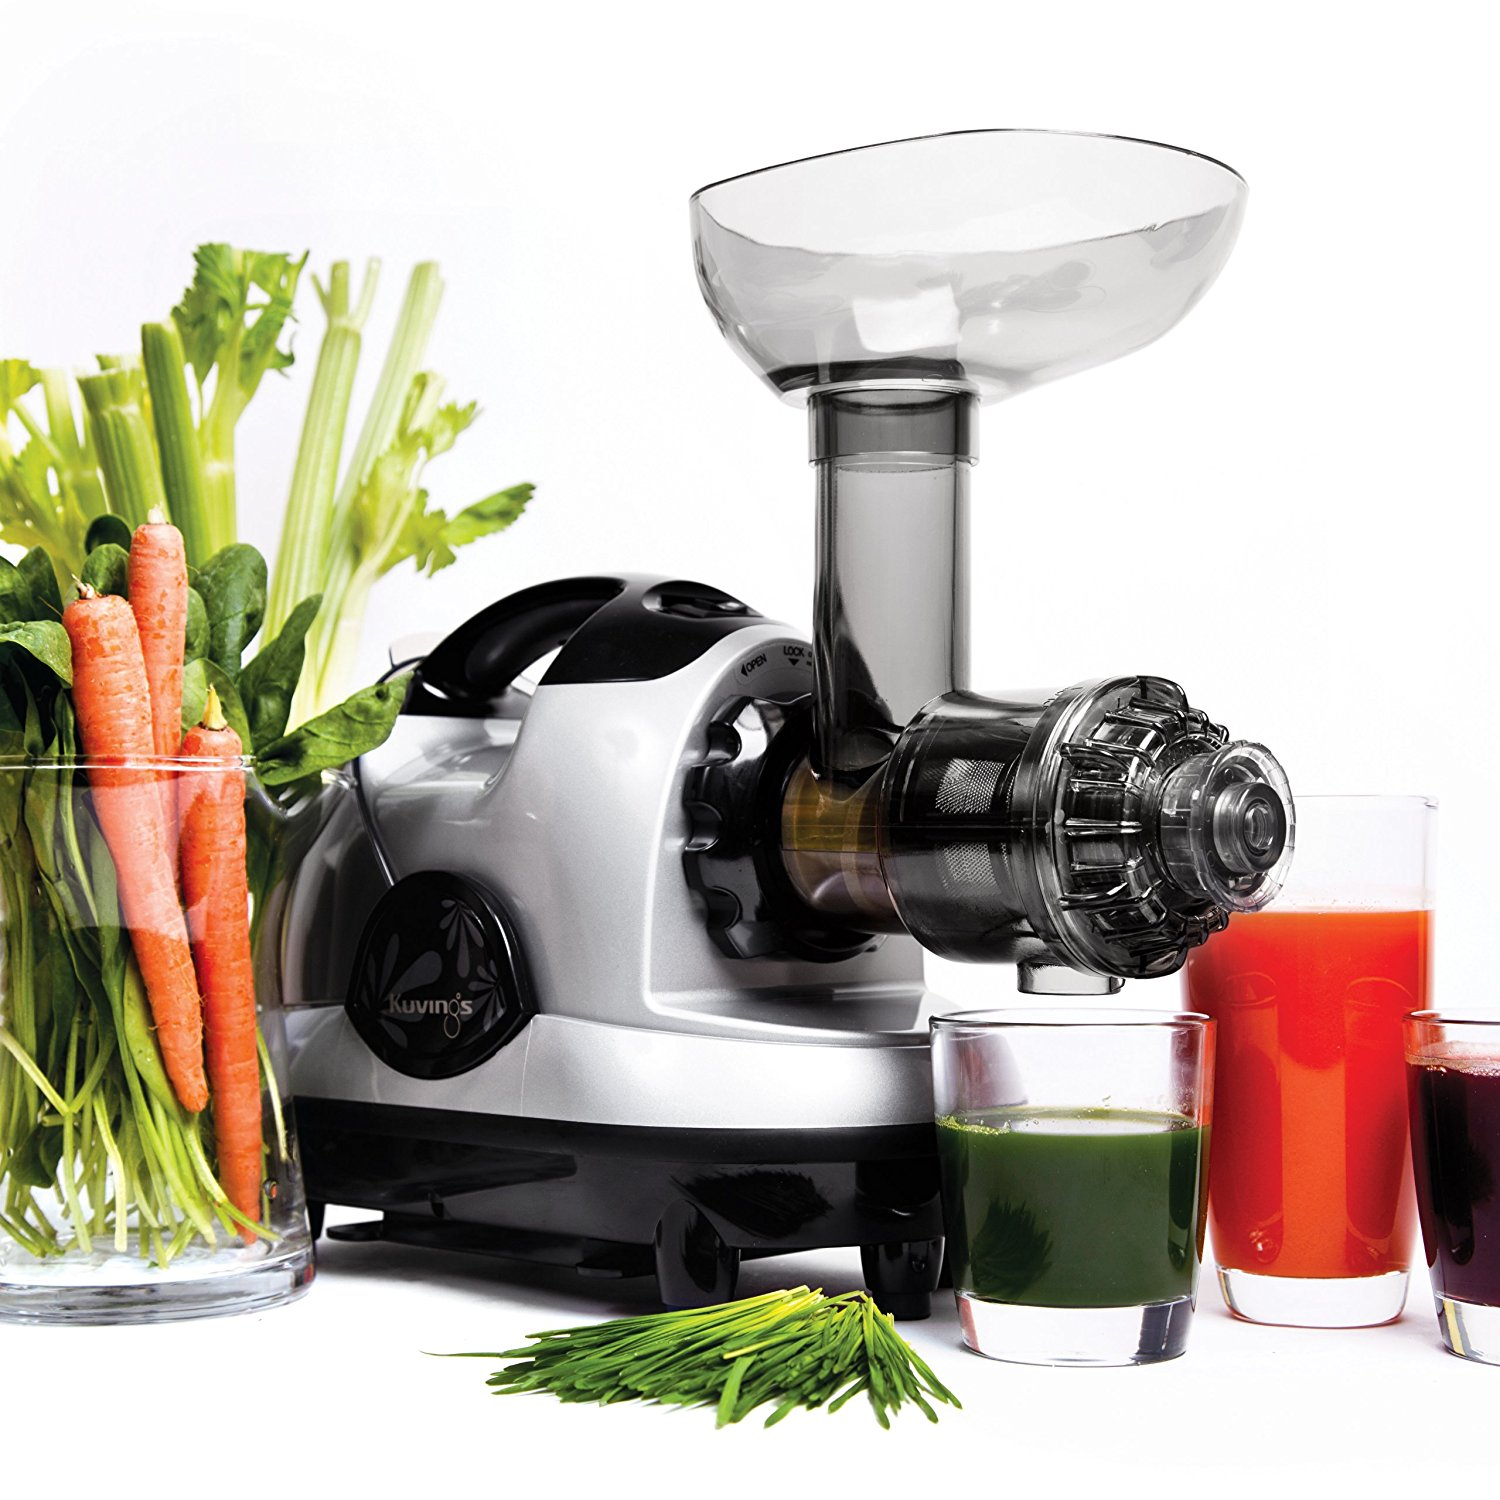 Slow Juicer Review 2018 : Best Masticating Juicer 2018: 10 Best Juicers Reviews & Buying Guide